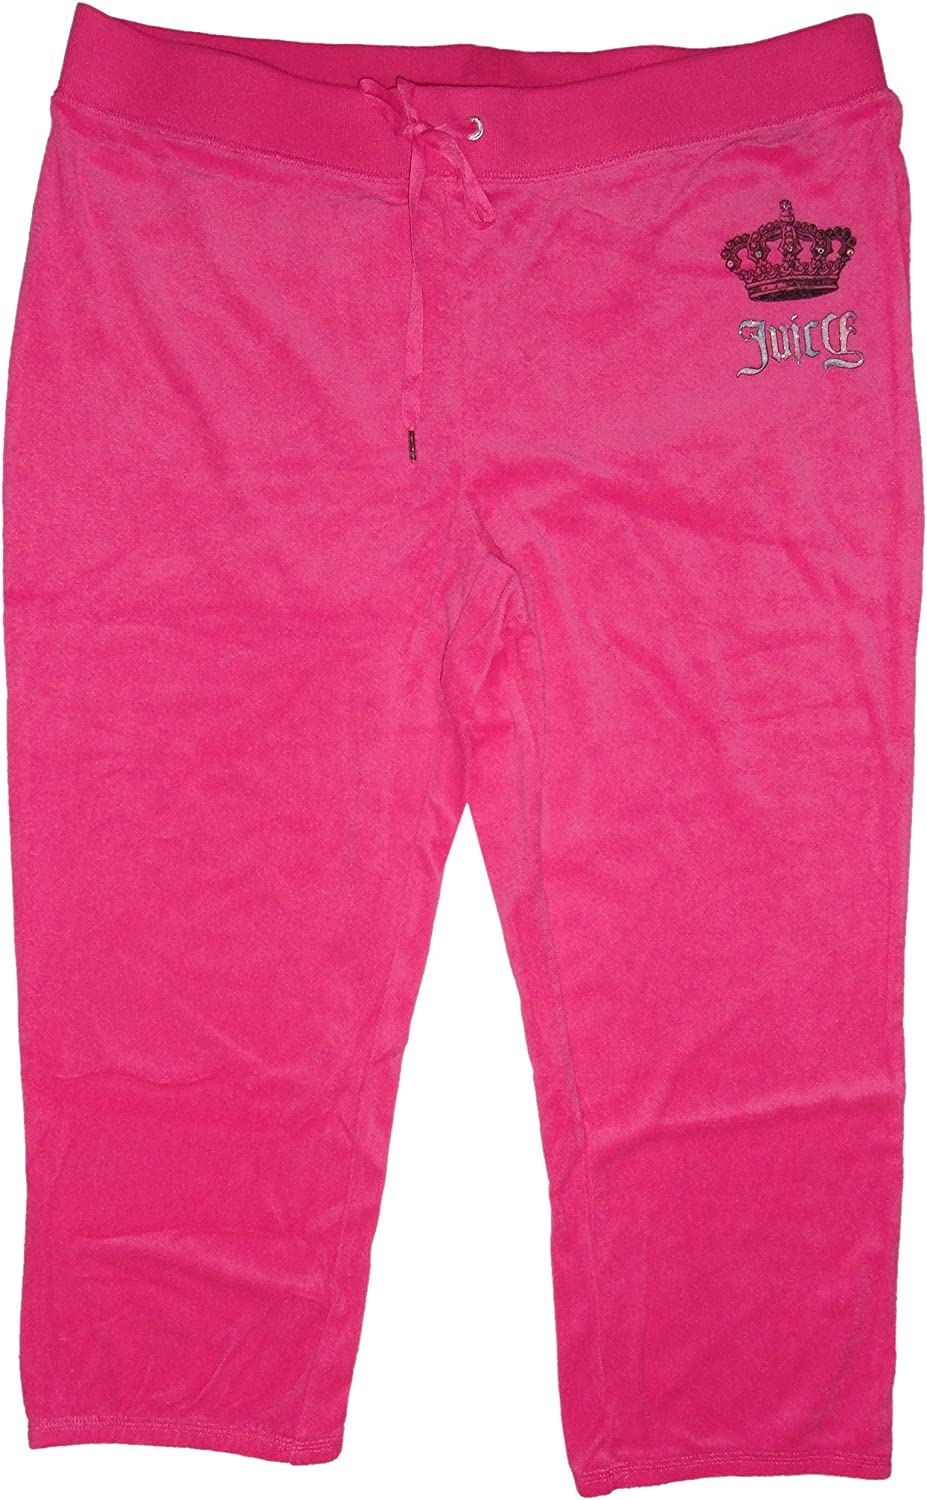 Juicy Couture Womens Velour Crown Logo Sweatpants Knockout Pink